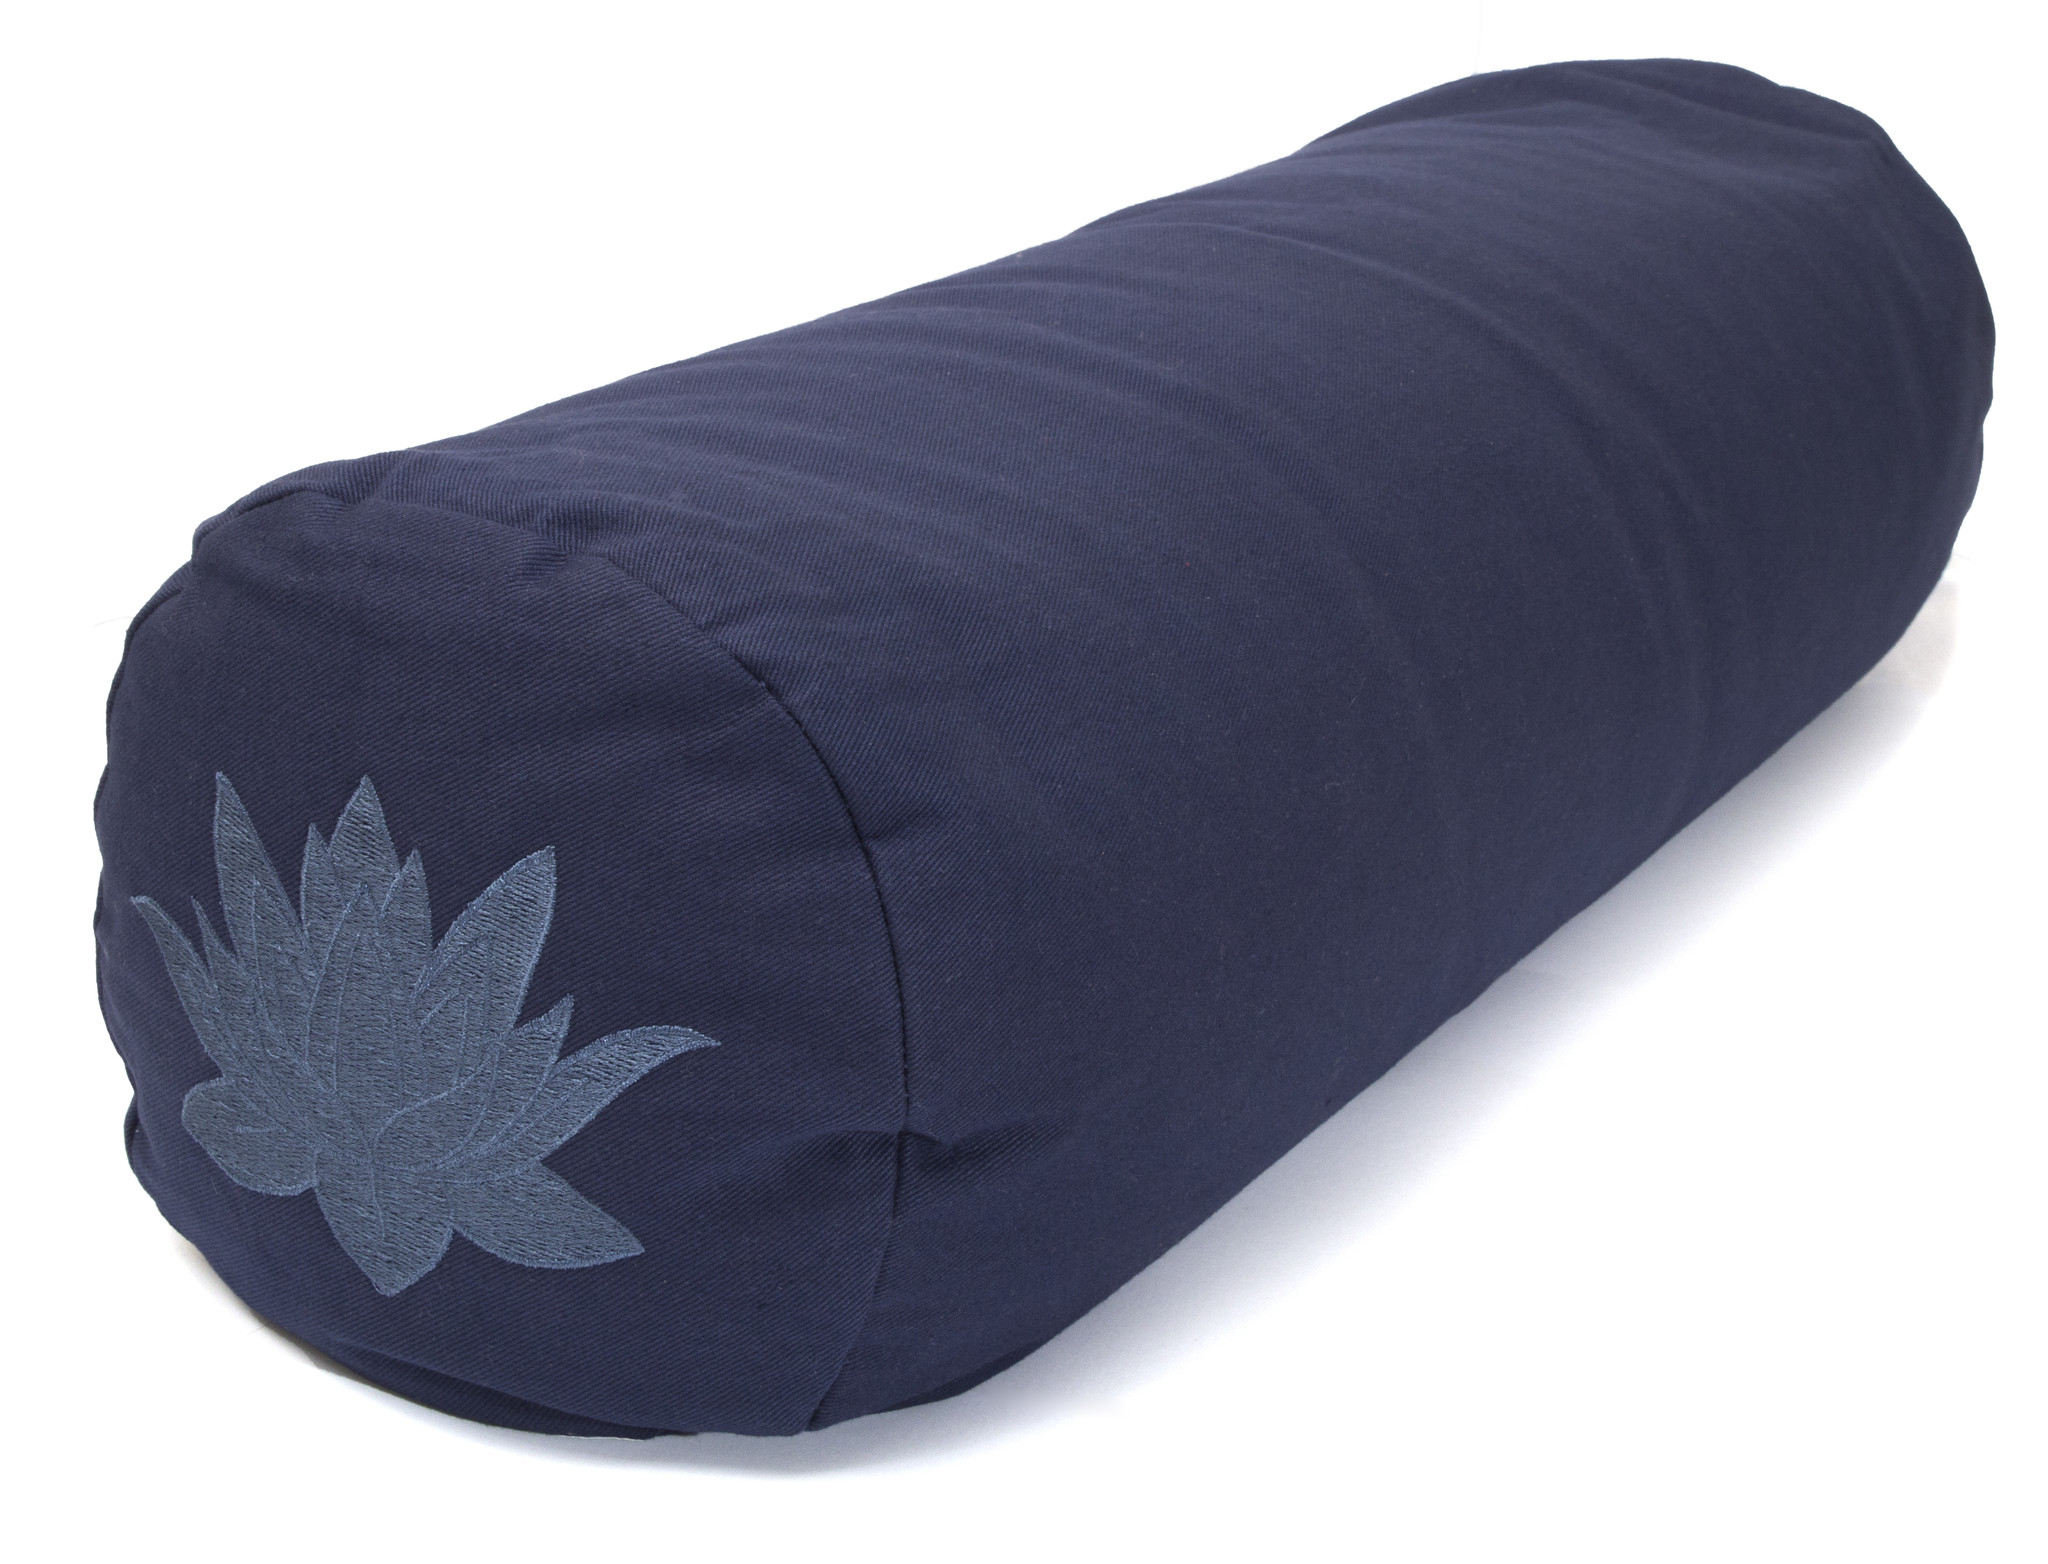 Buckwheat Meditation Cushions Uk picture on Buckwheat Meditation Cushions Uk201536816536 with Buckwheat Meditation Cushions Uk, sofa 942199bdbc0e4a050b0df3d0a0a1c88f